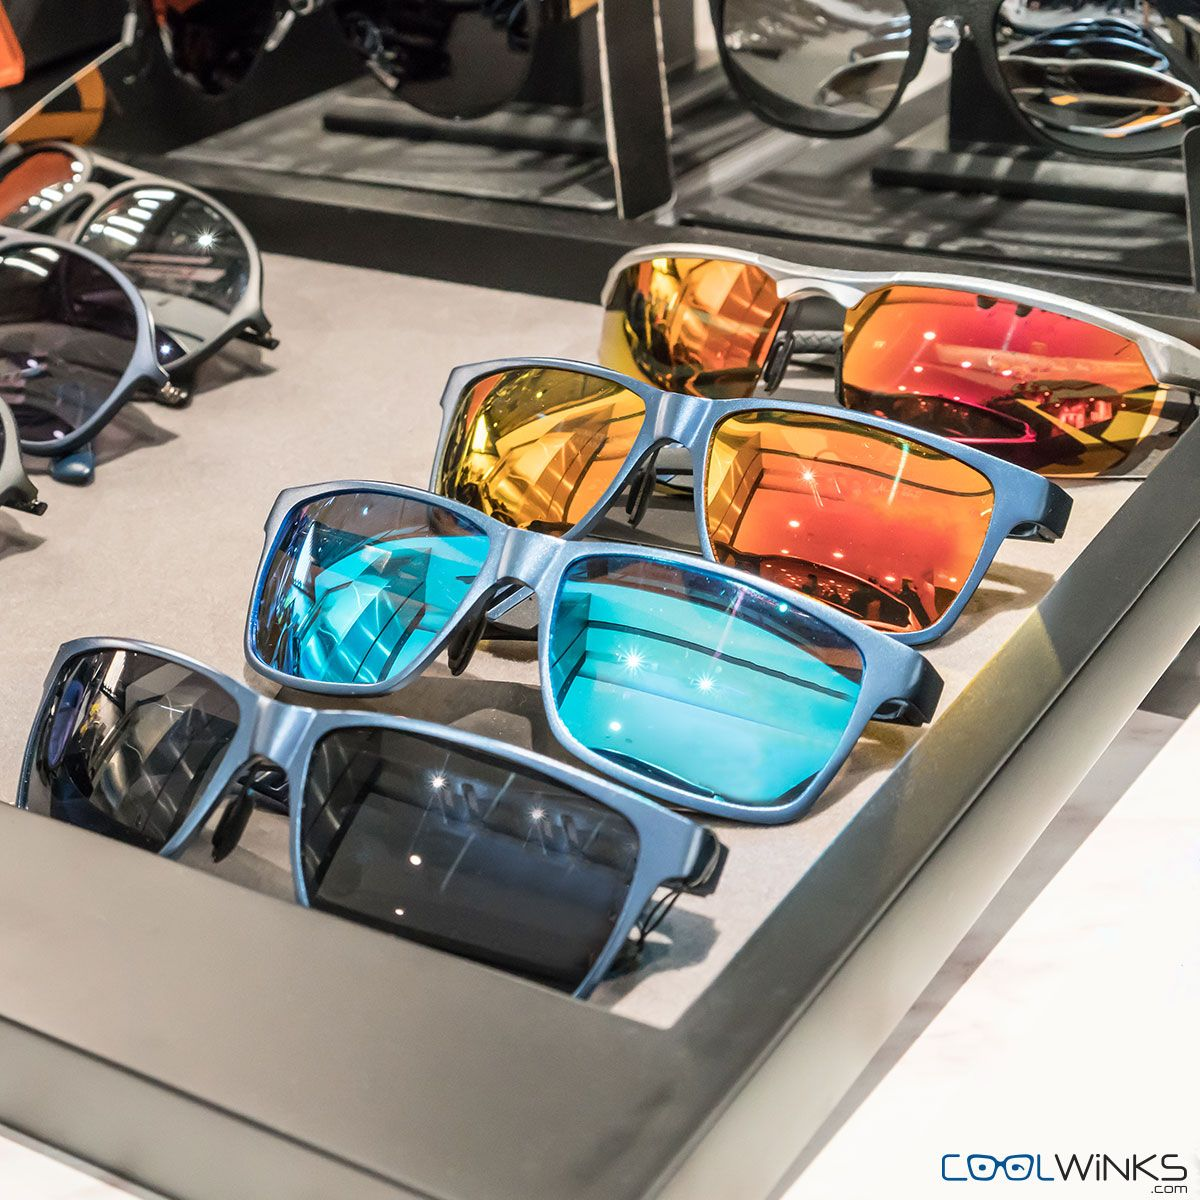 f53d454465c Don t Miss BUY 1 GET 1 OFFER on Sunglasses  Coolwinks! Avail BOGO ...